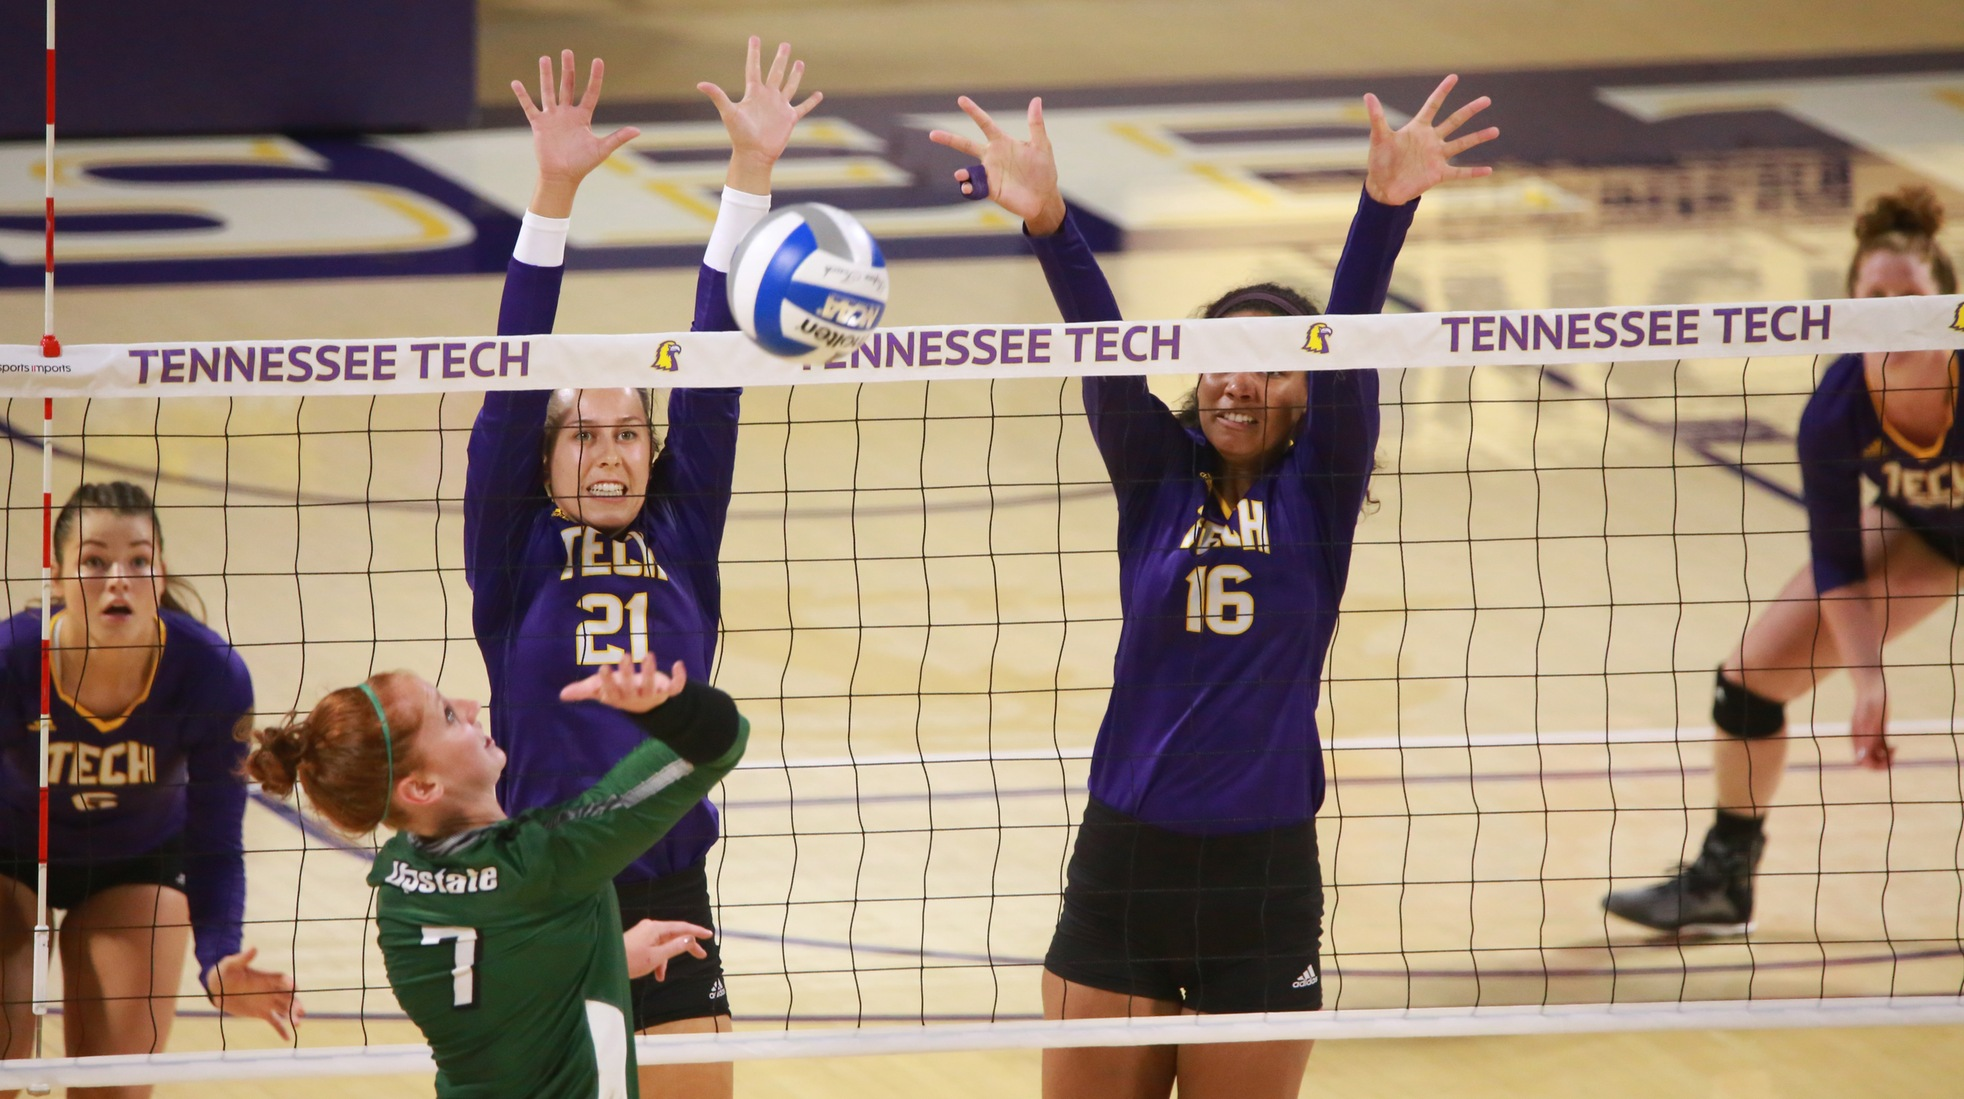 TTU volleyball welcomes Chattanooga in nonconference match Tuesday night